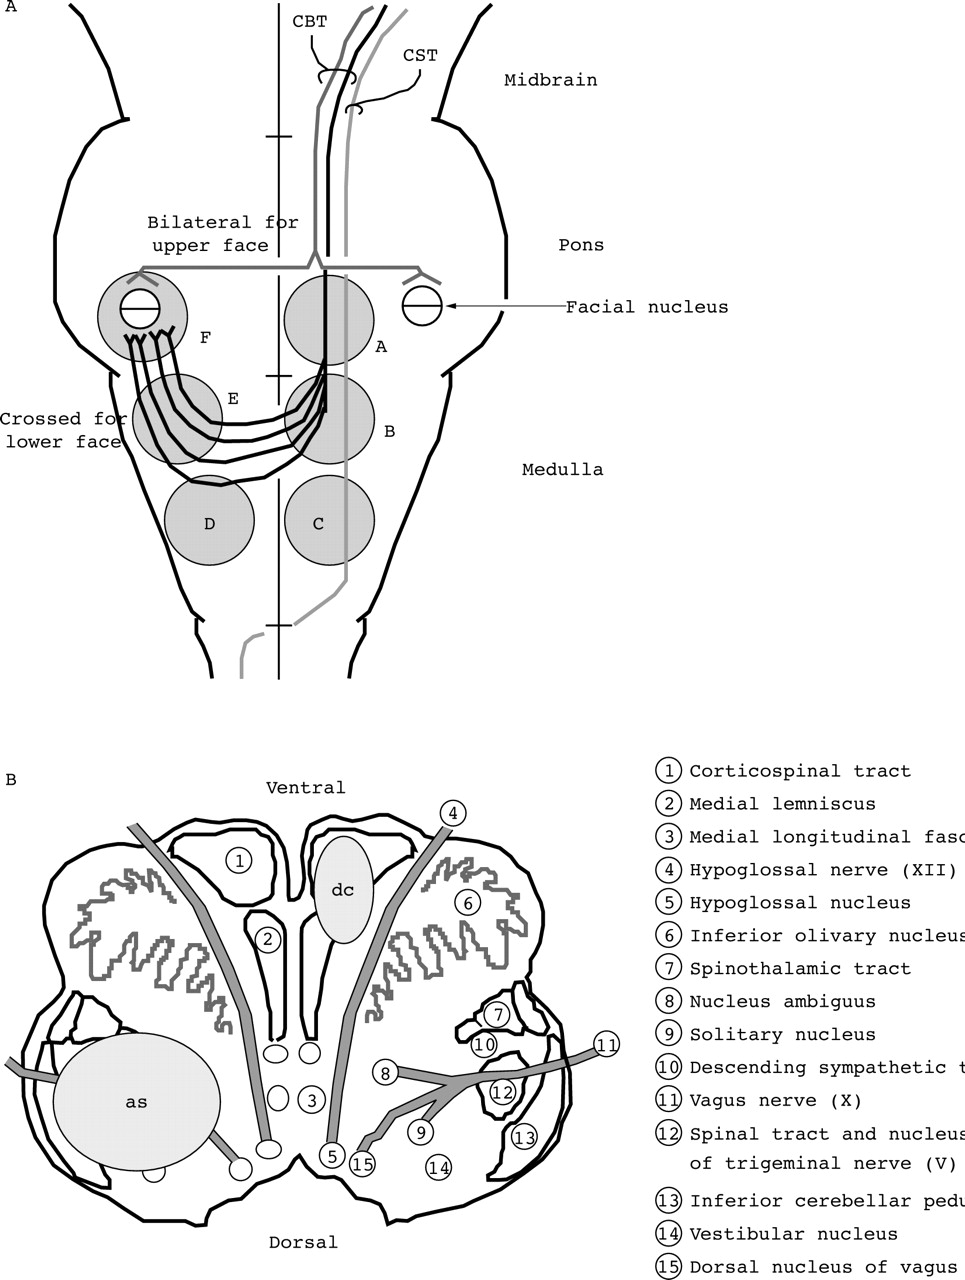 course and distribution of facial corticobulbar tract